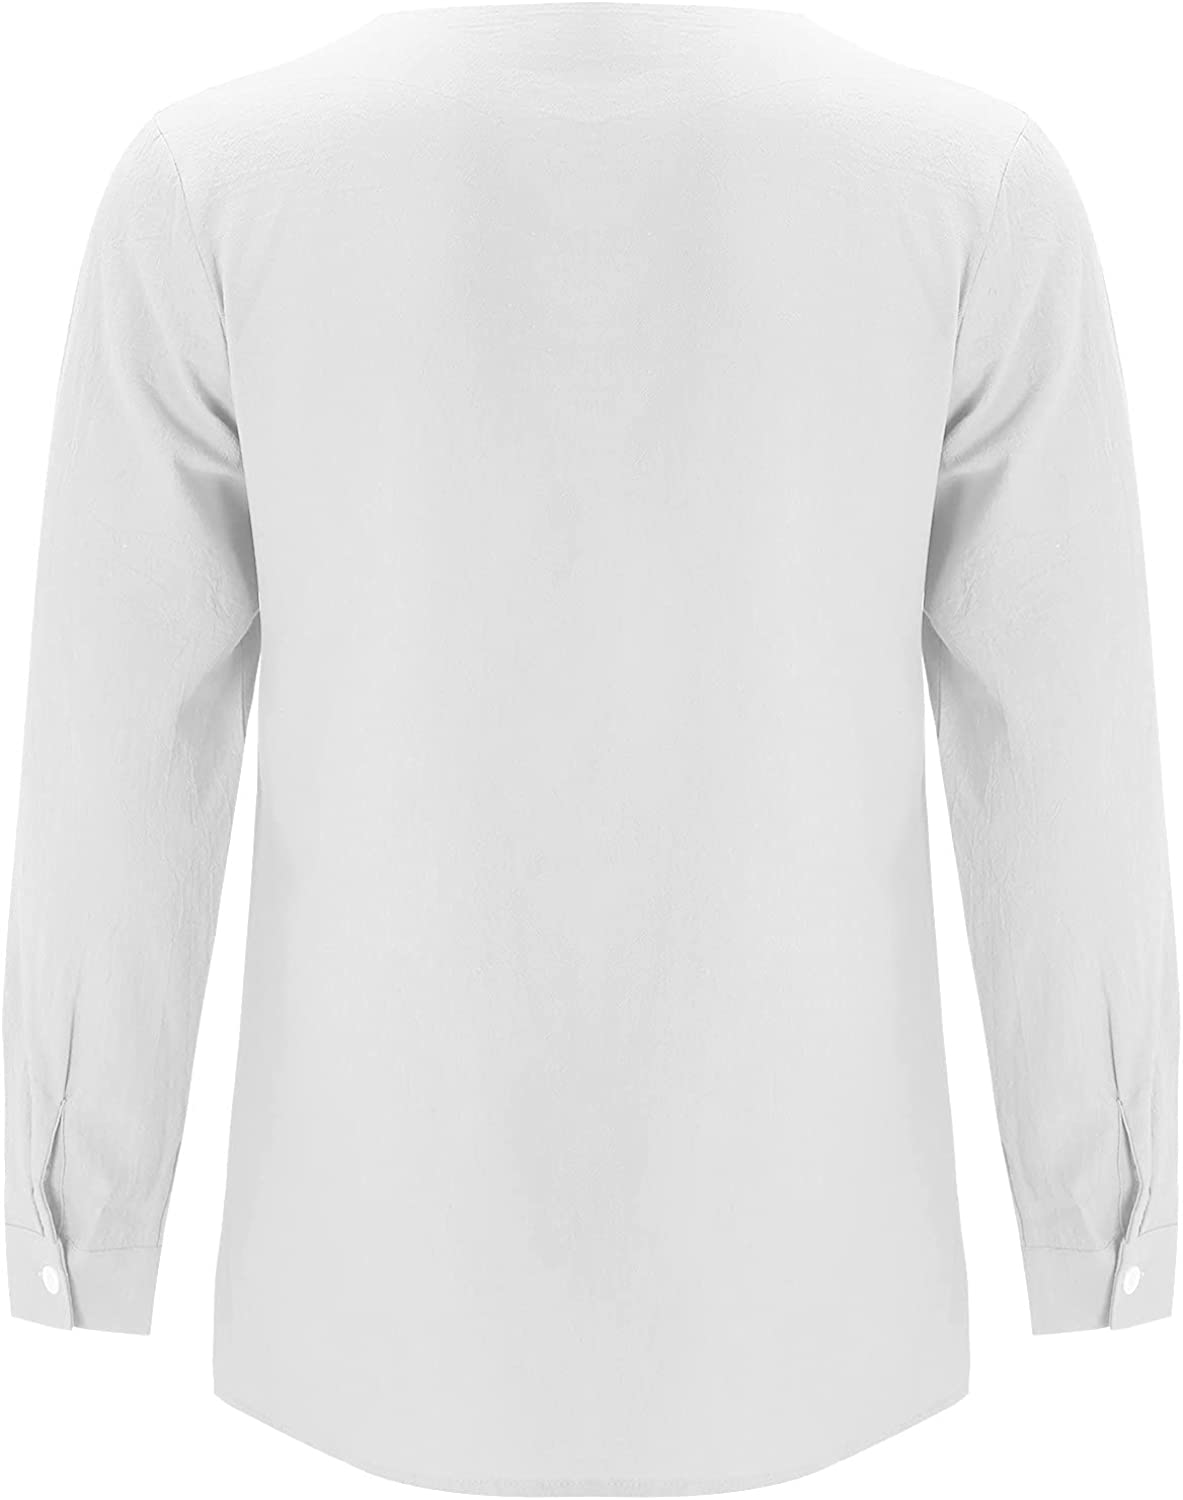 xoxing Shirts for Men Casual Autumn Plus Size Solid Color Long-Sleeved Cotton and Linen Shirt Collarless Top Pullovers